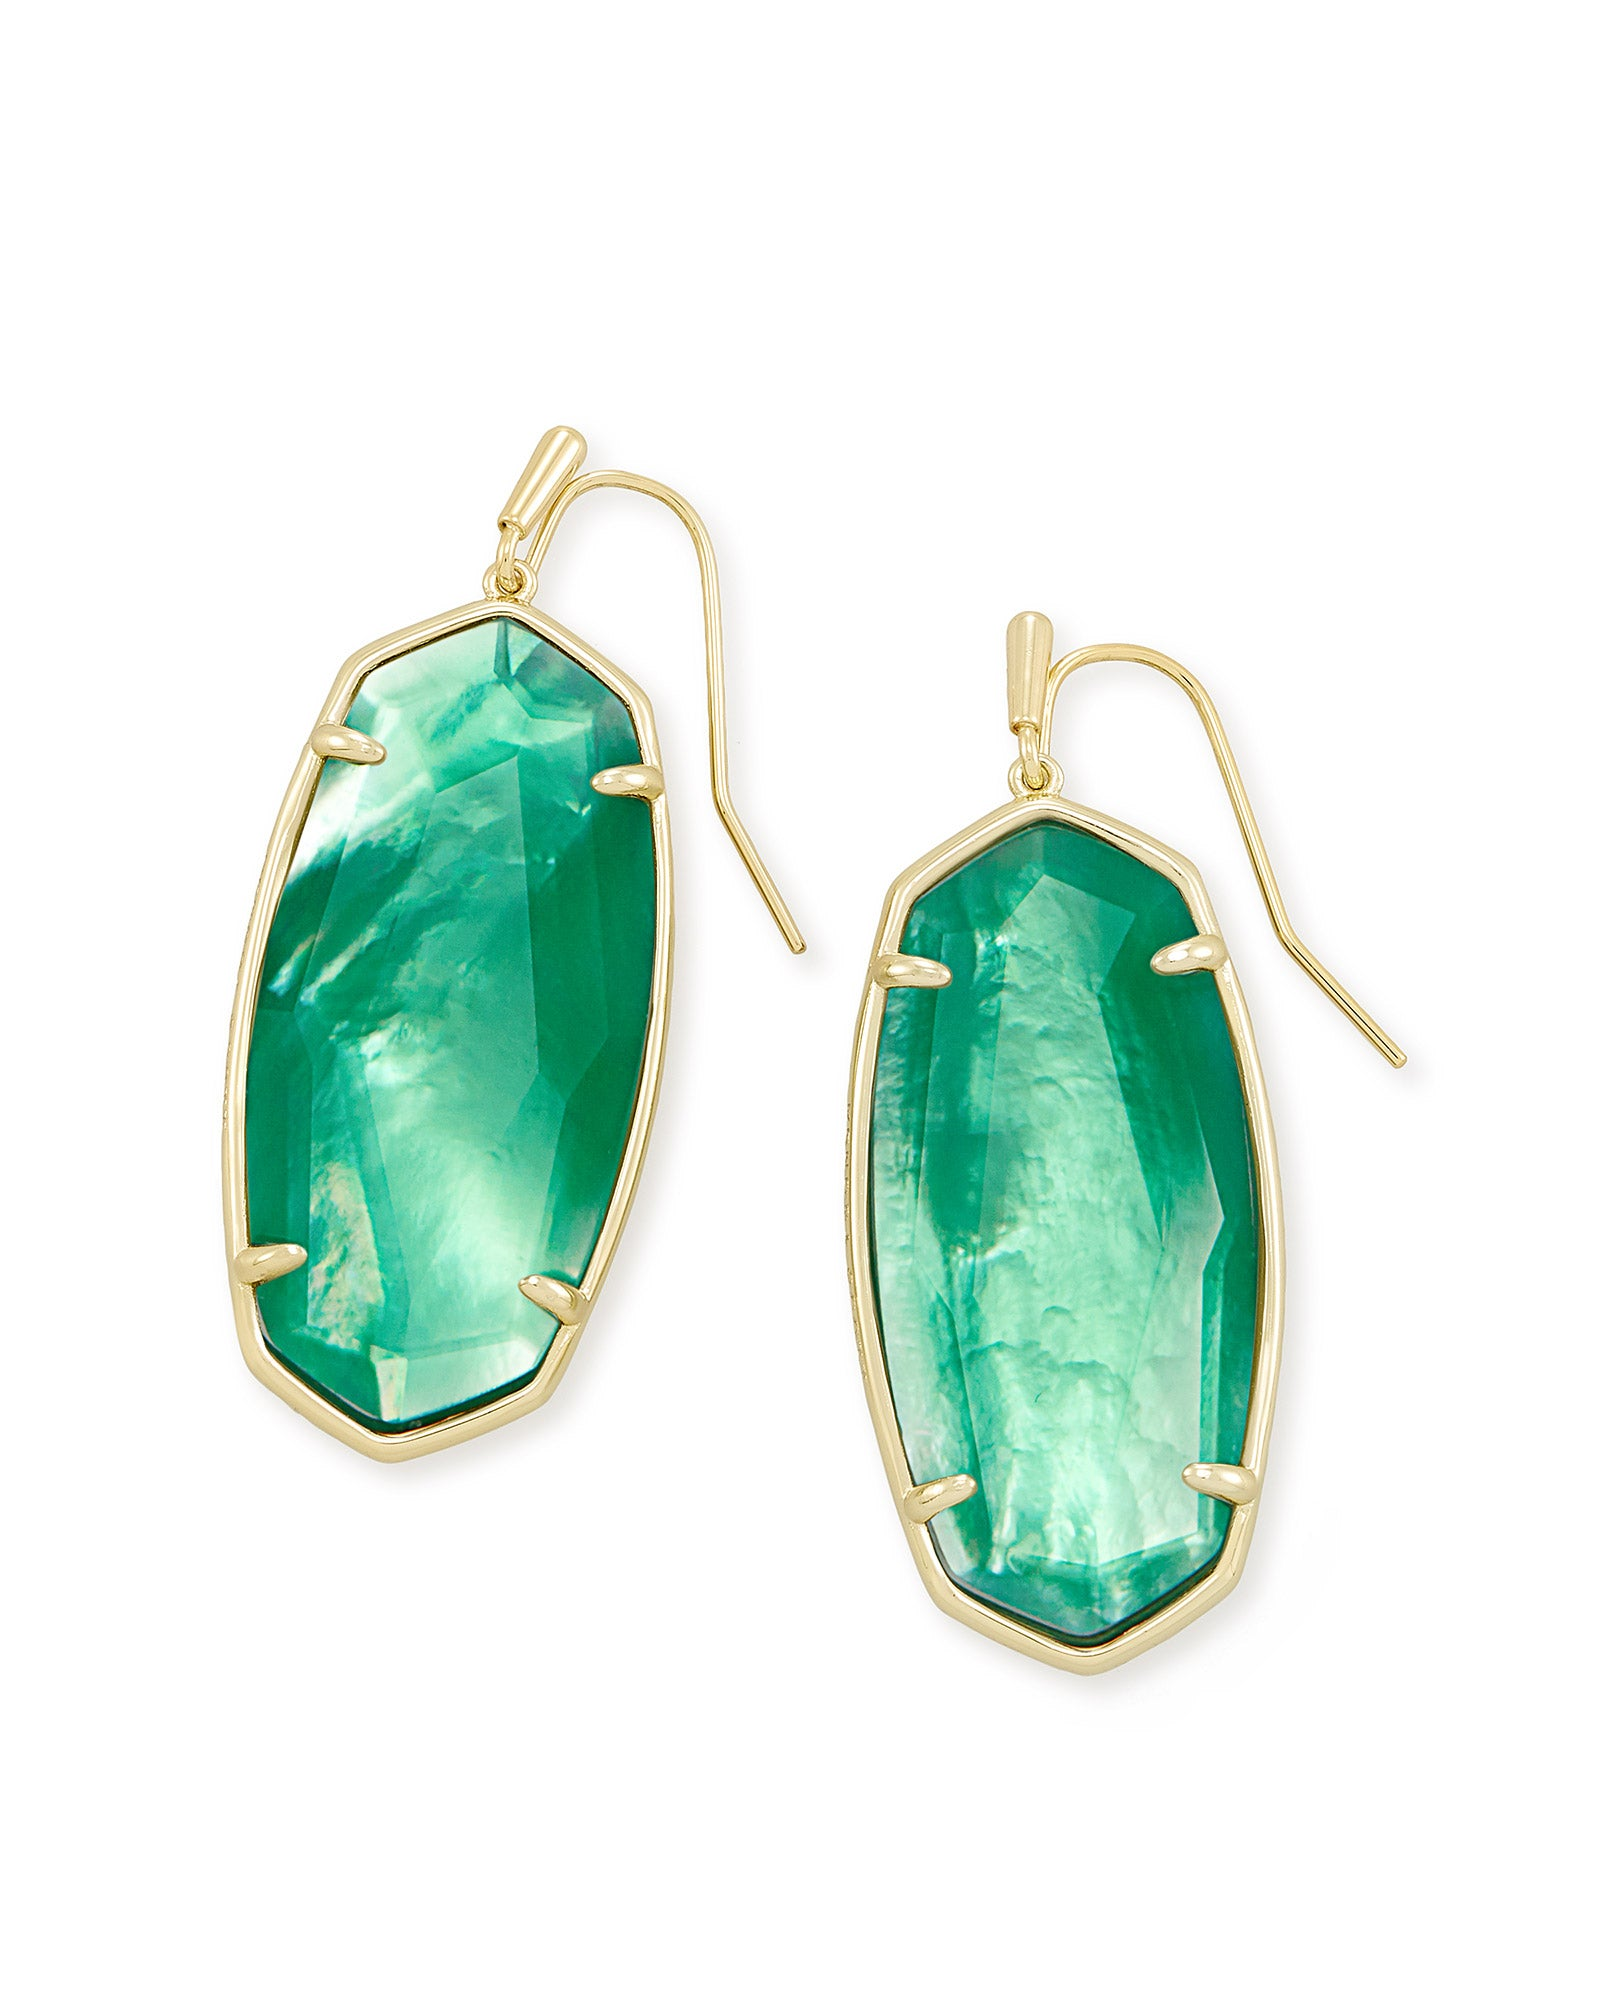 Faceted Elle Gold Drop Earrings in Jade Green Illusion